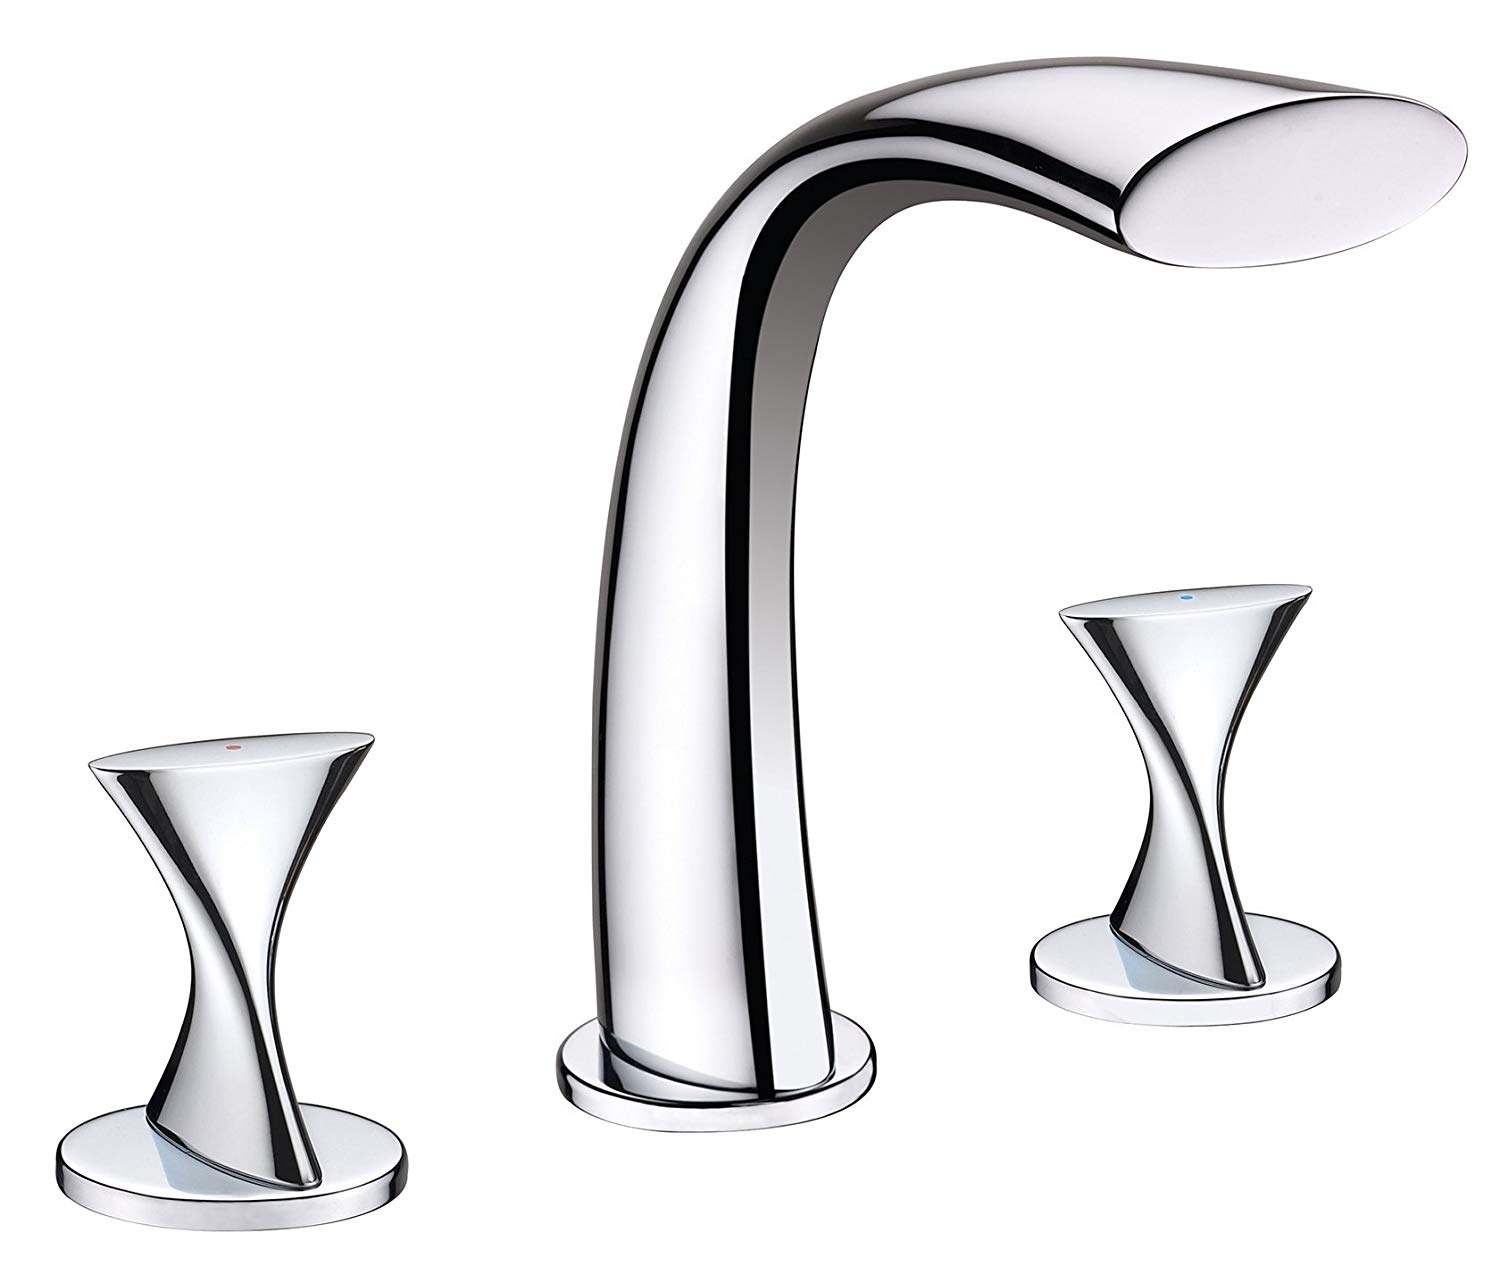 Twisted Chrome Finish Dual Handle Bathroom Faucet